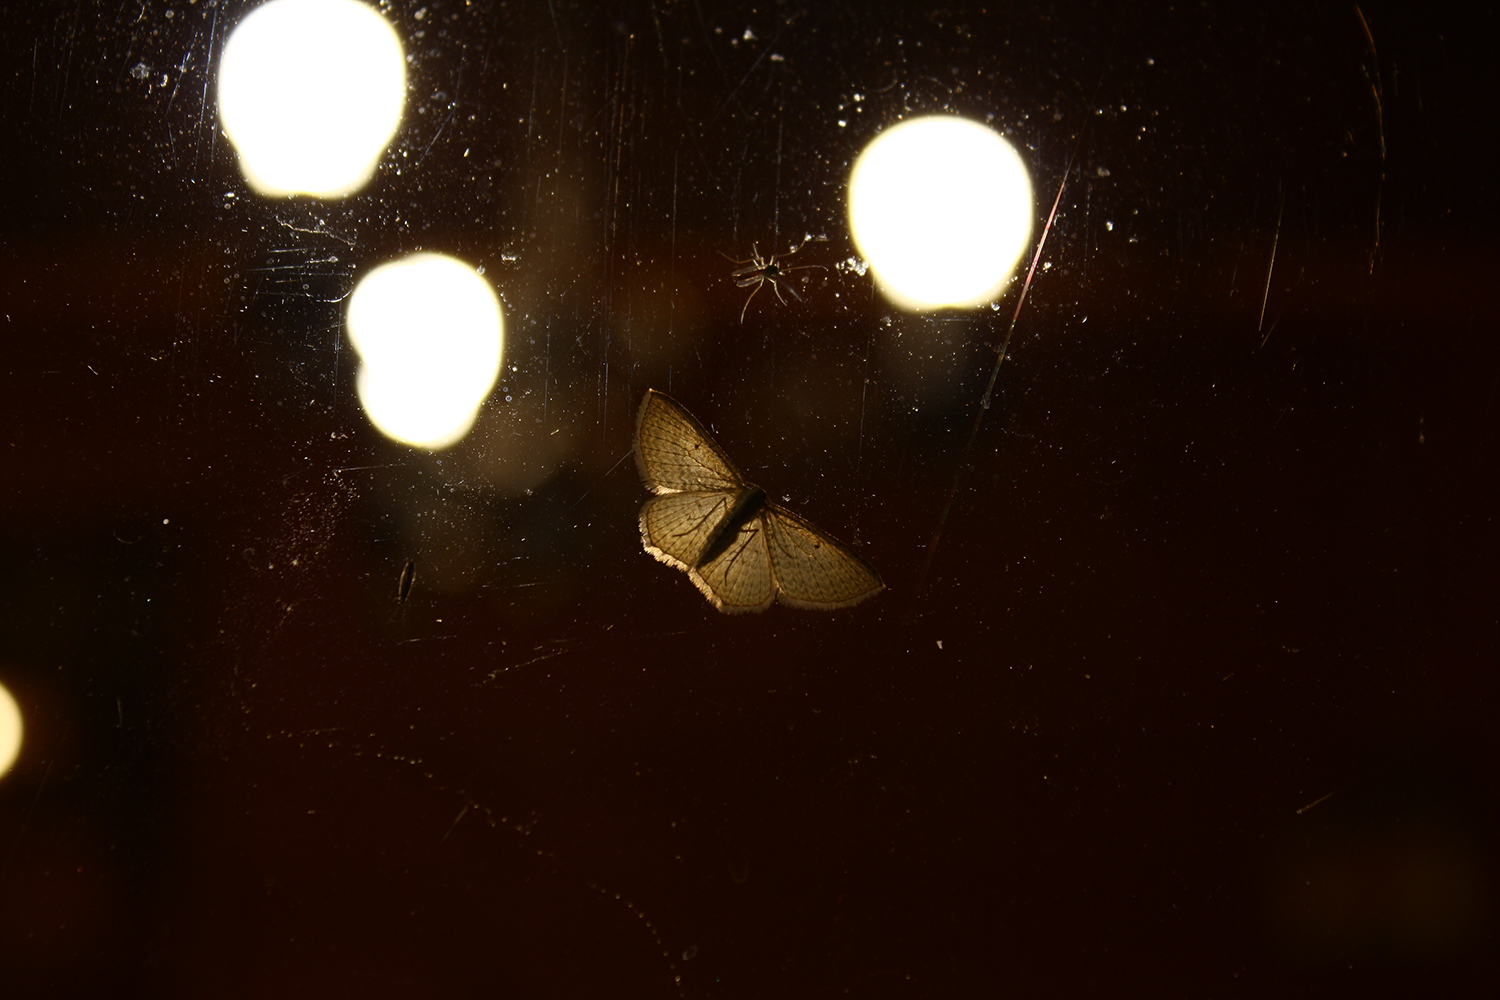 Moth in the lights, Lake Tarawera, New Zealand